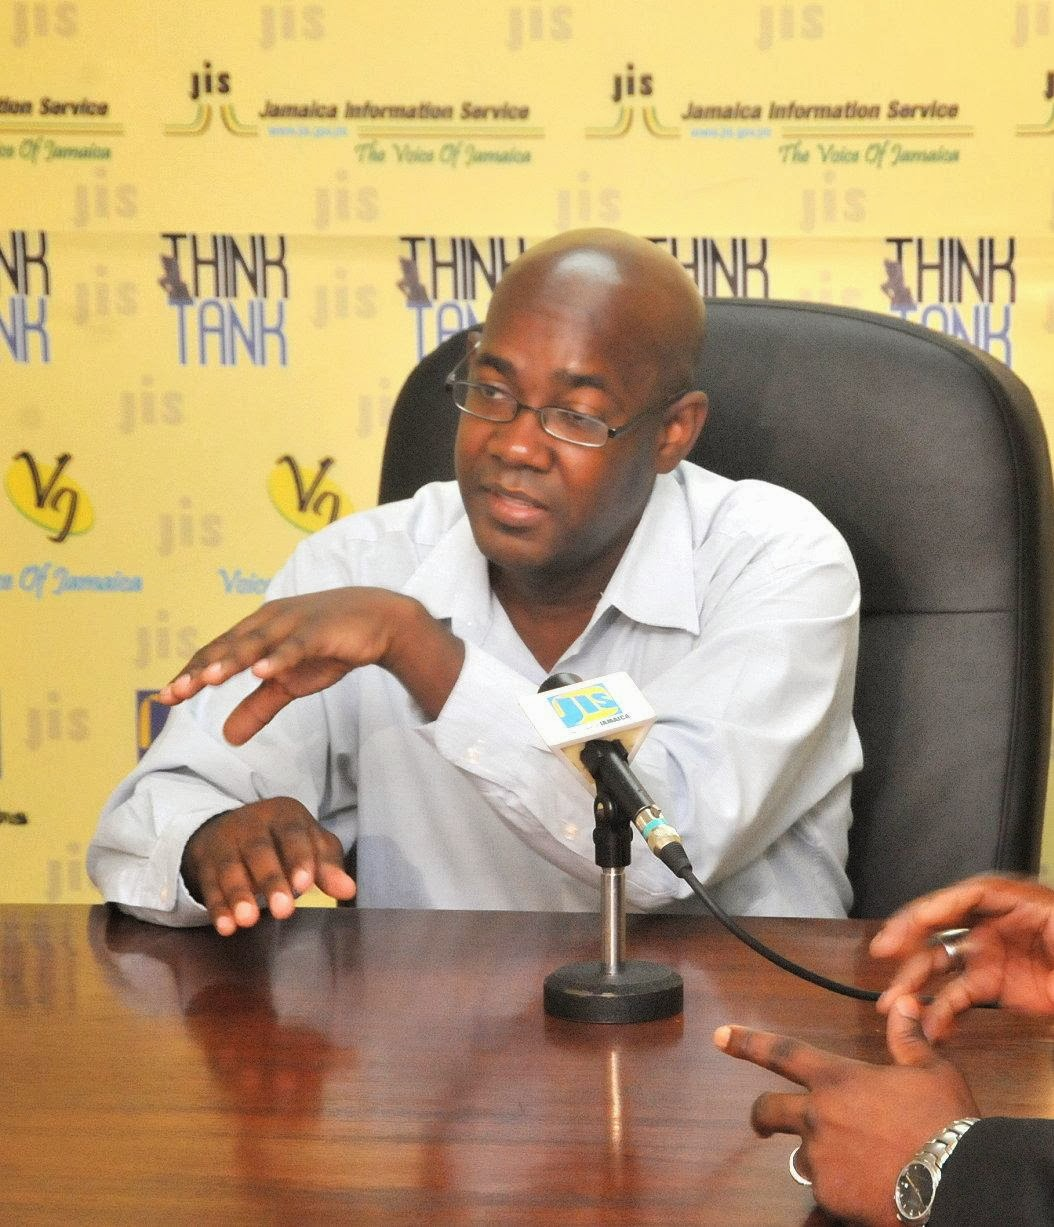 My Thoughts on Technology and Jamaica: Why UNICEF's Dr Kenneth